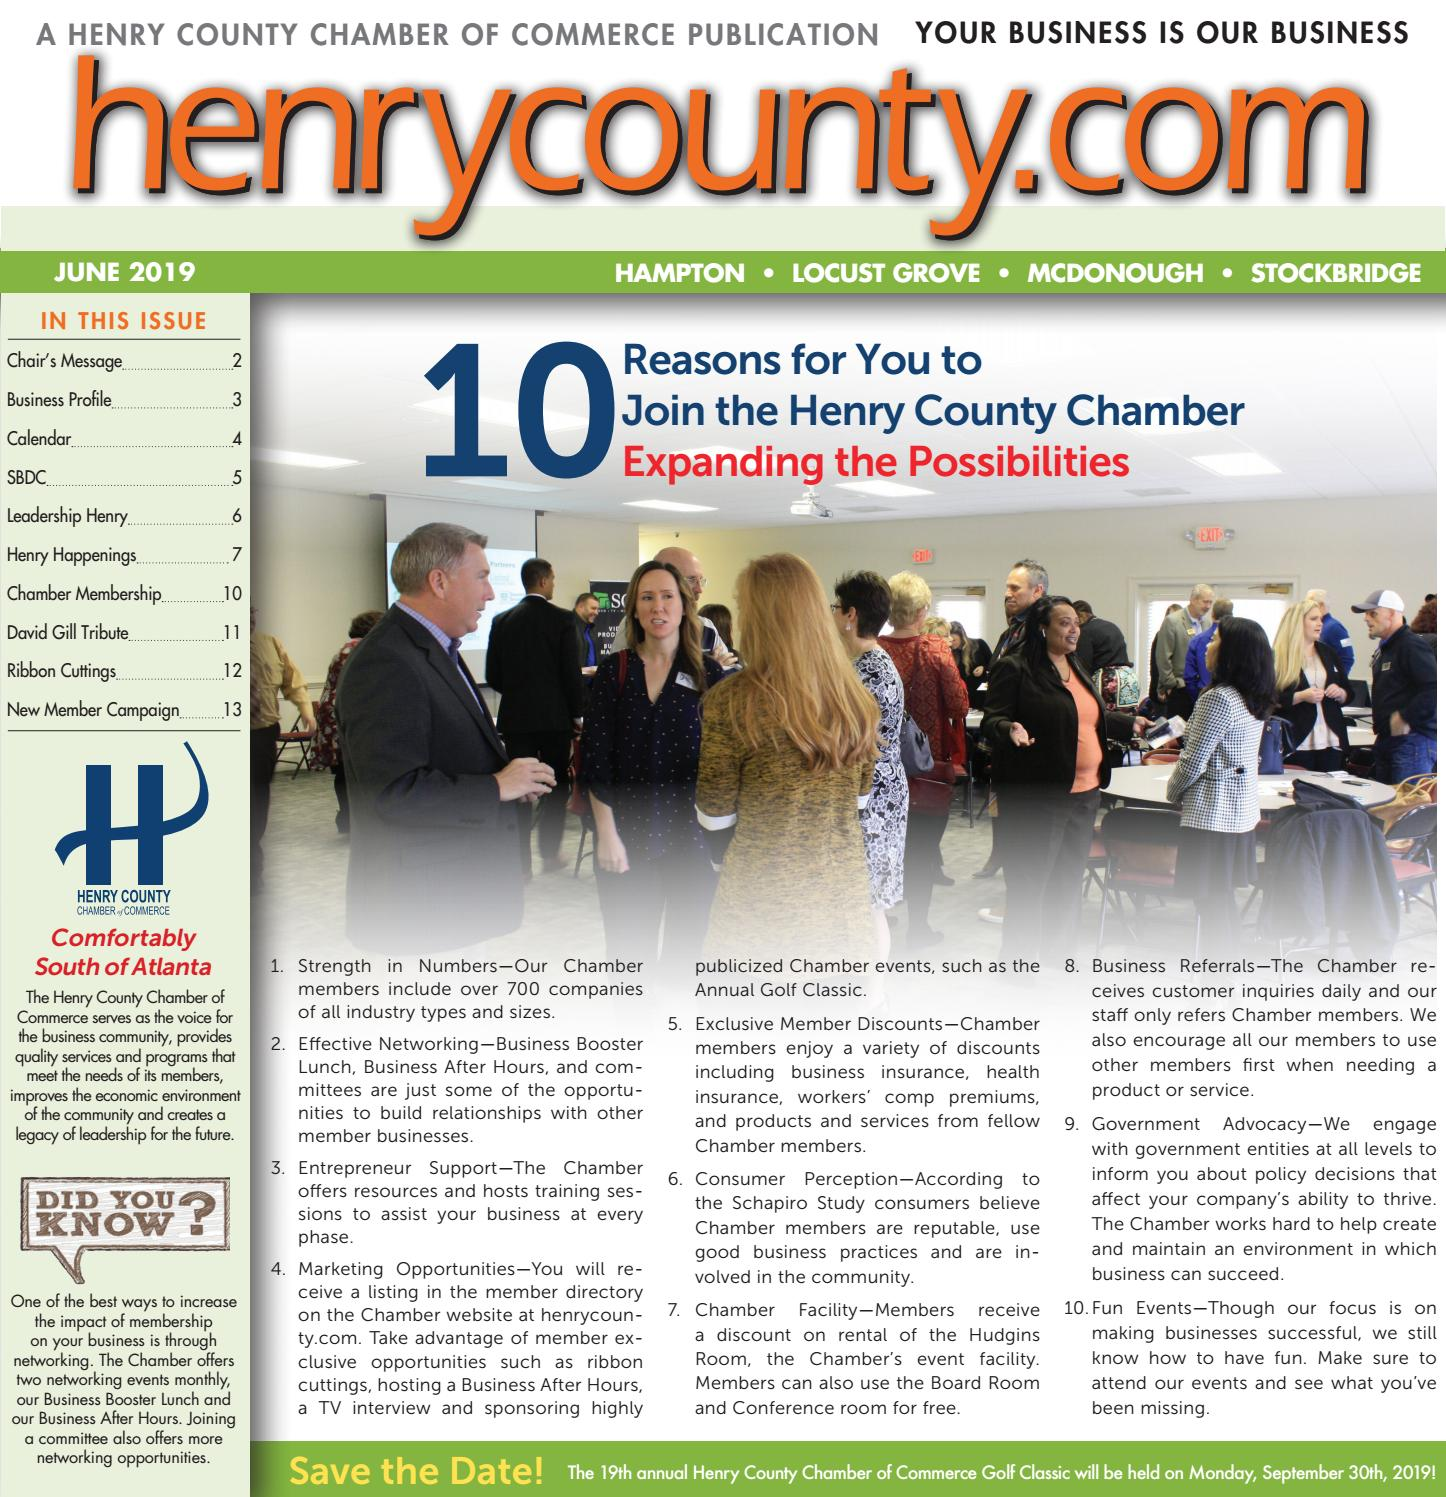 HCCC Newsletter June 2019 by Henry County Chamber of Commerce - issuu